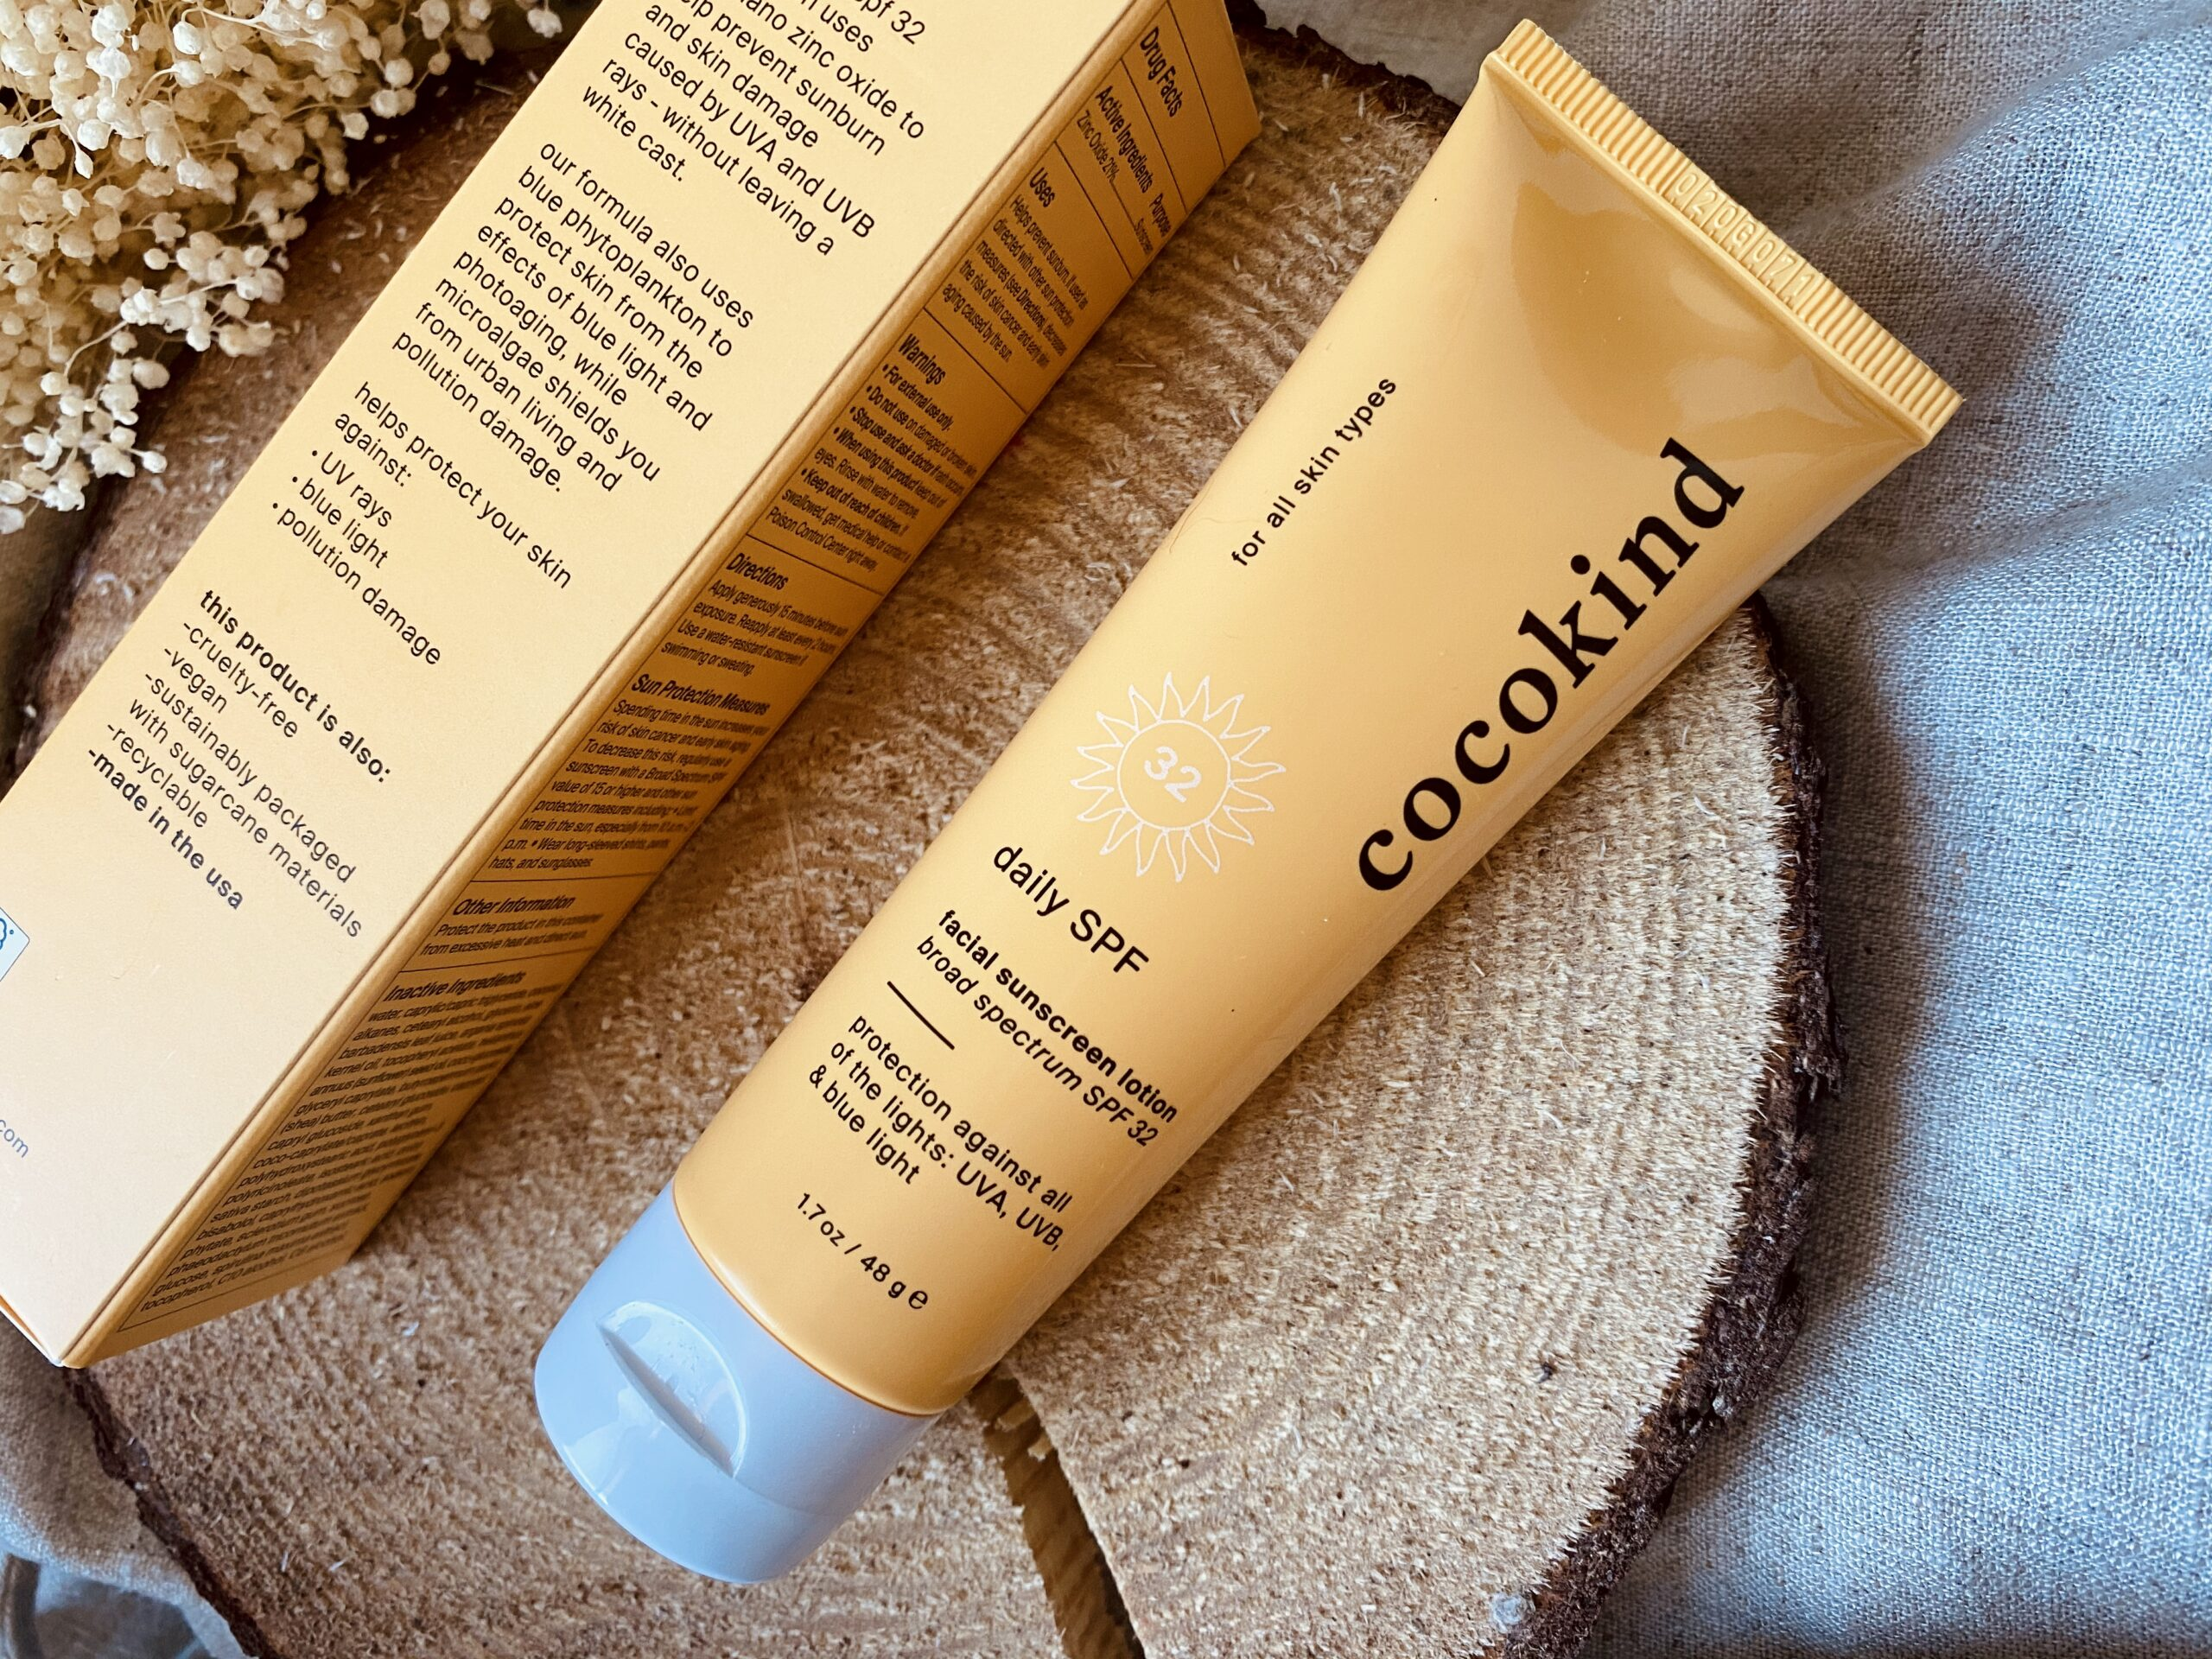 Cocokind sunscreen review